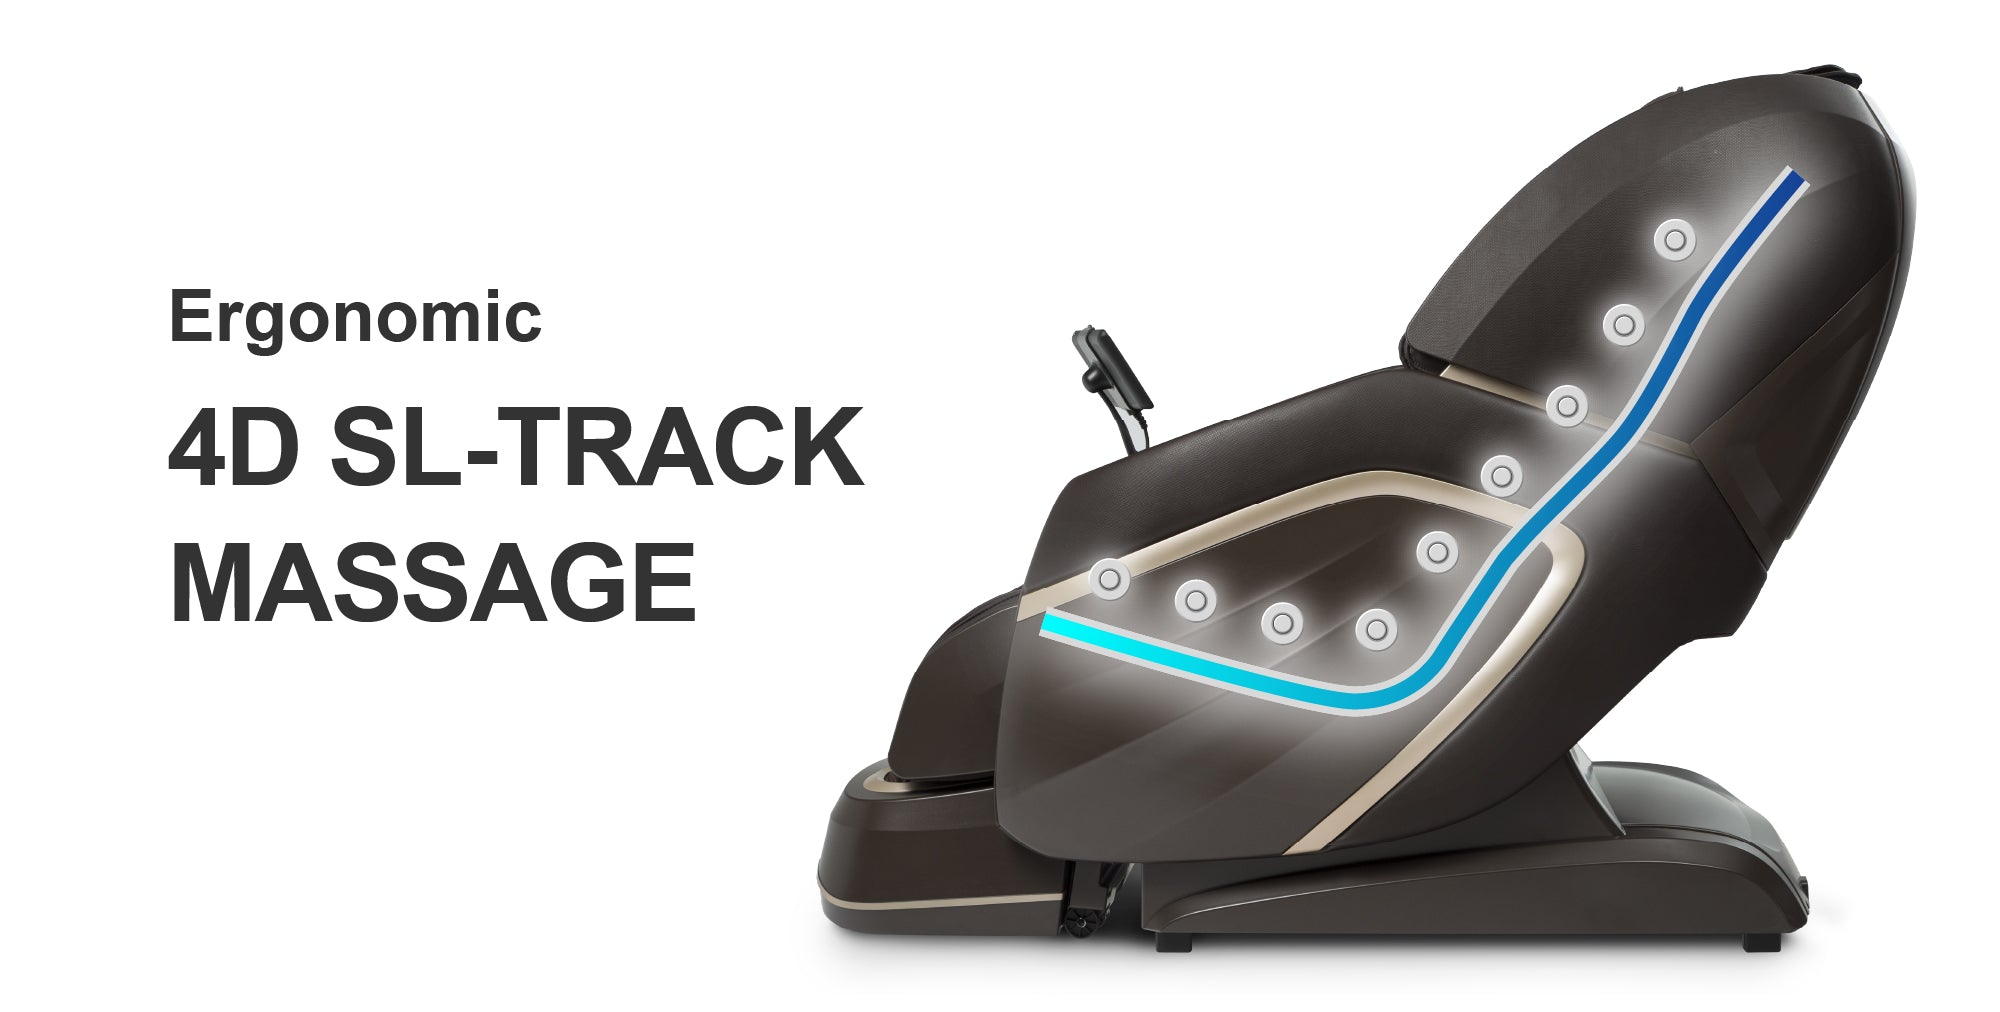 Ergonomic 4D SL-Track Massage